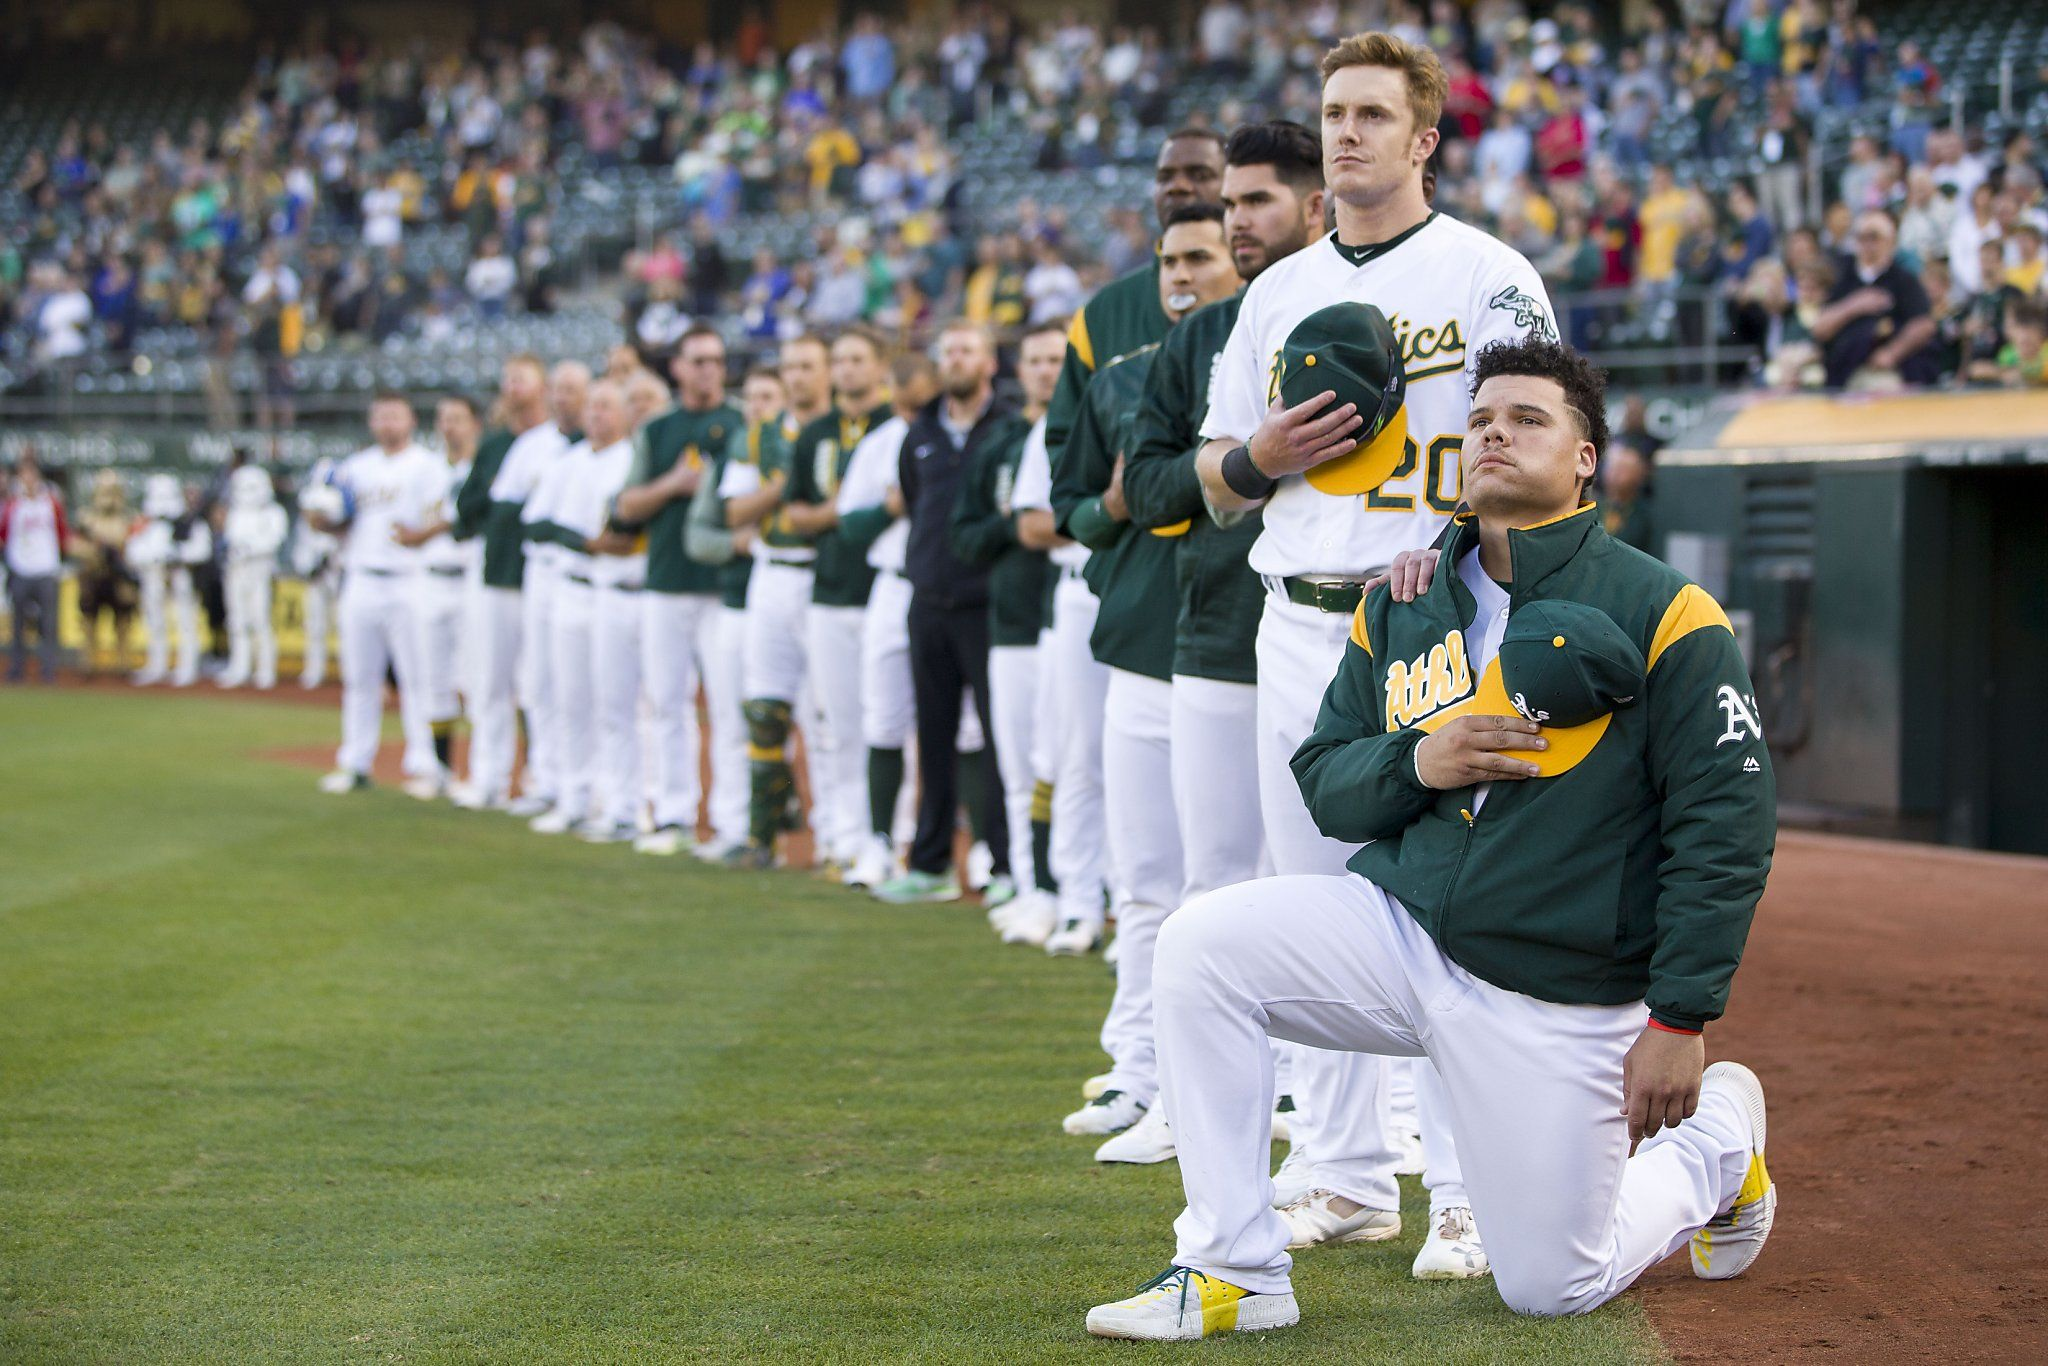 Pro Trump Waiter Refuses To Serve Oakland A S Player Who Knelt During Anthem Major League Baseball Players Kneeling During National Anthem Baseball Players